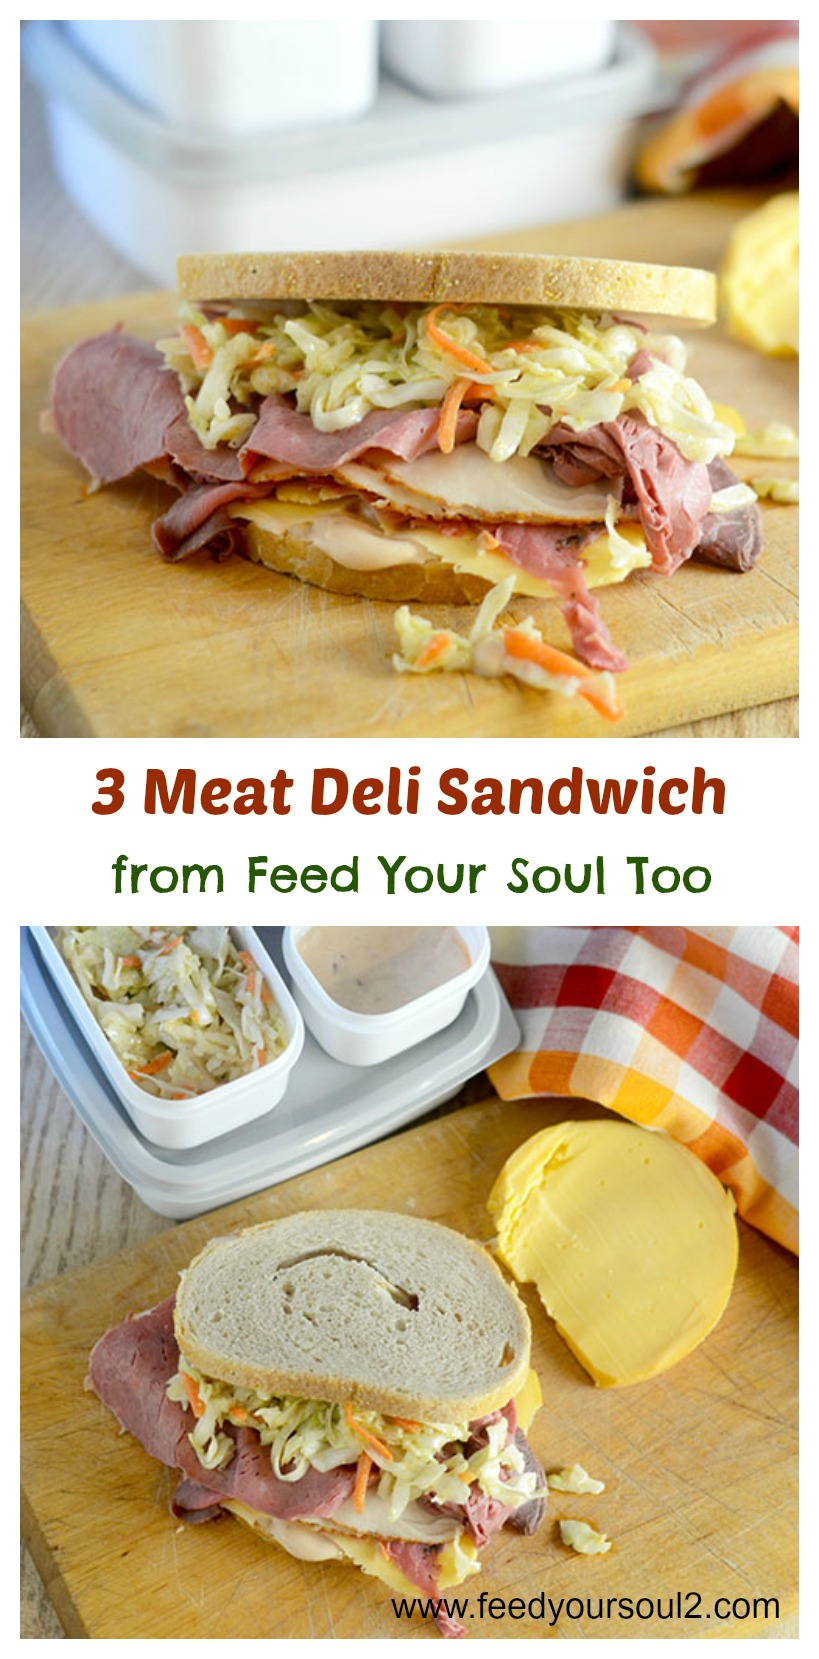 3 Meat Deli Sandwich